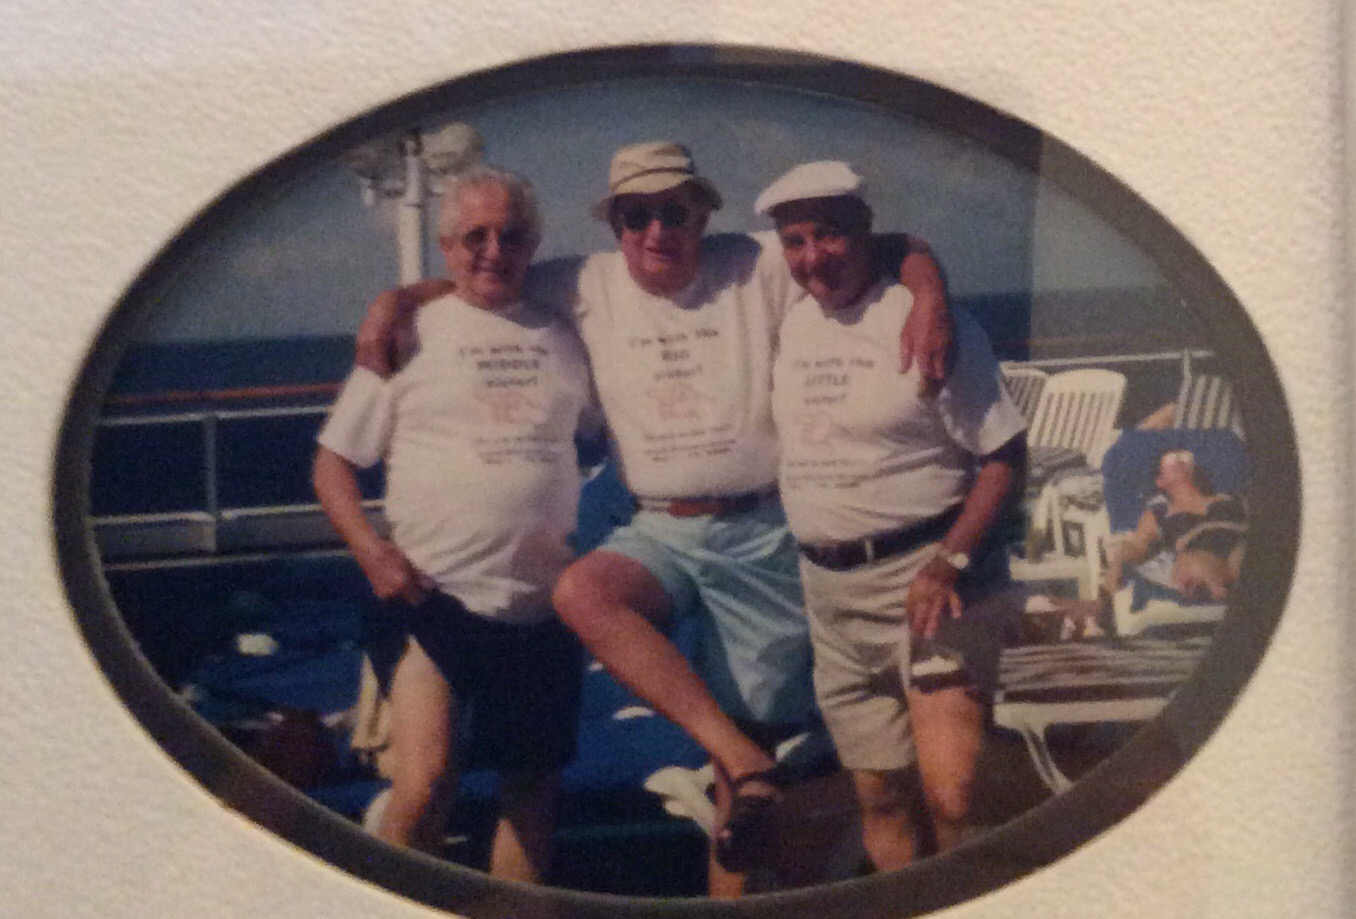 Mike, Tony and Harry on our cruise together